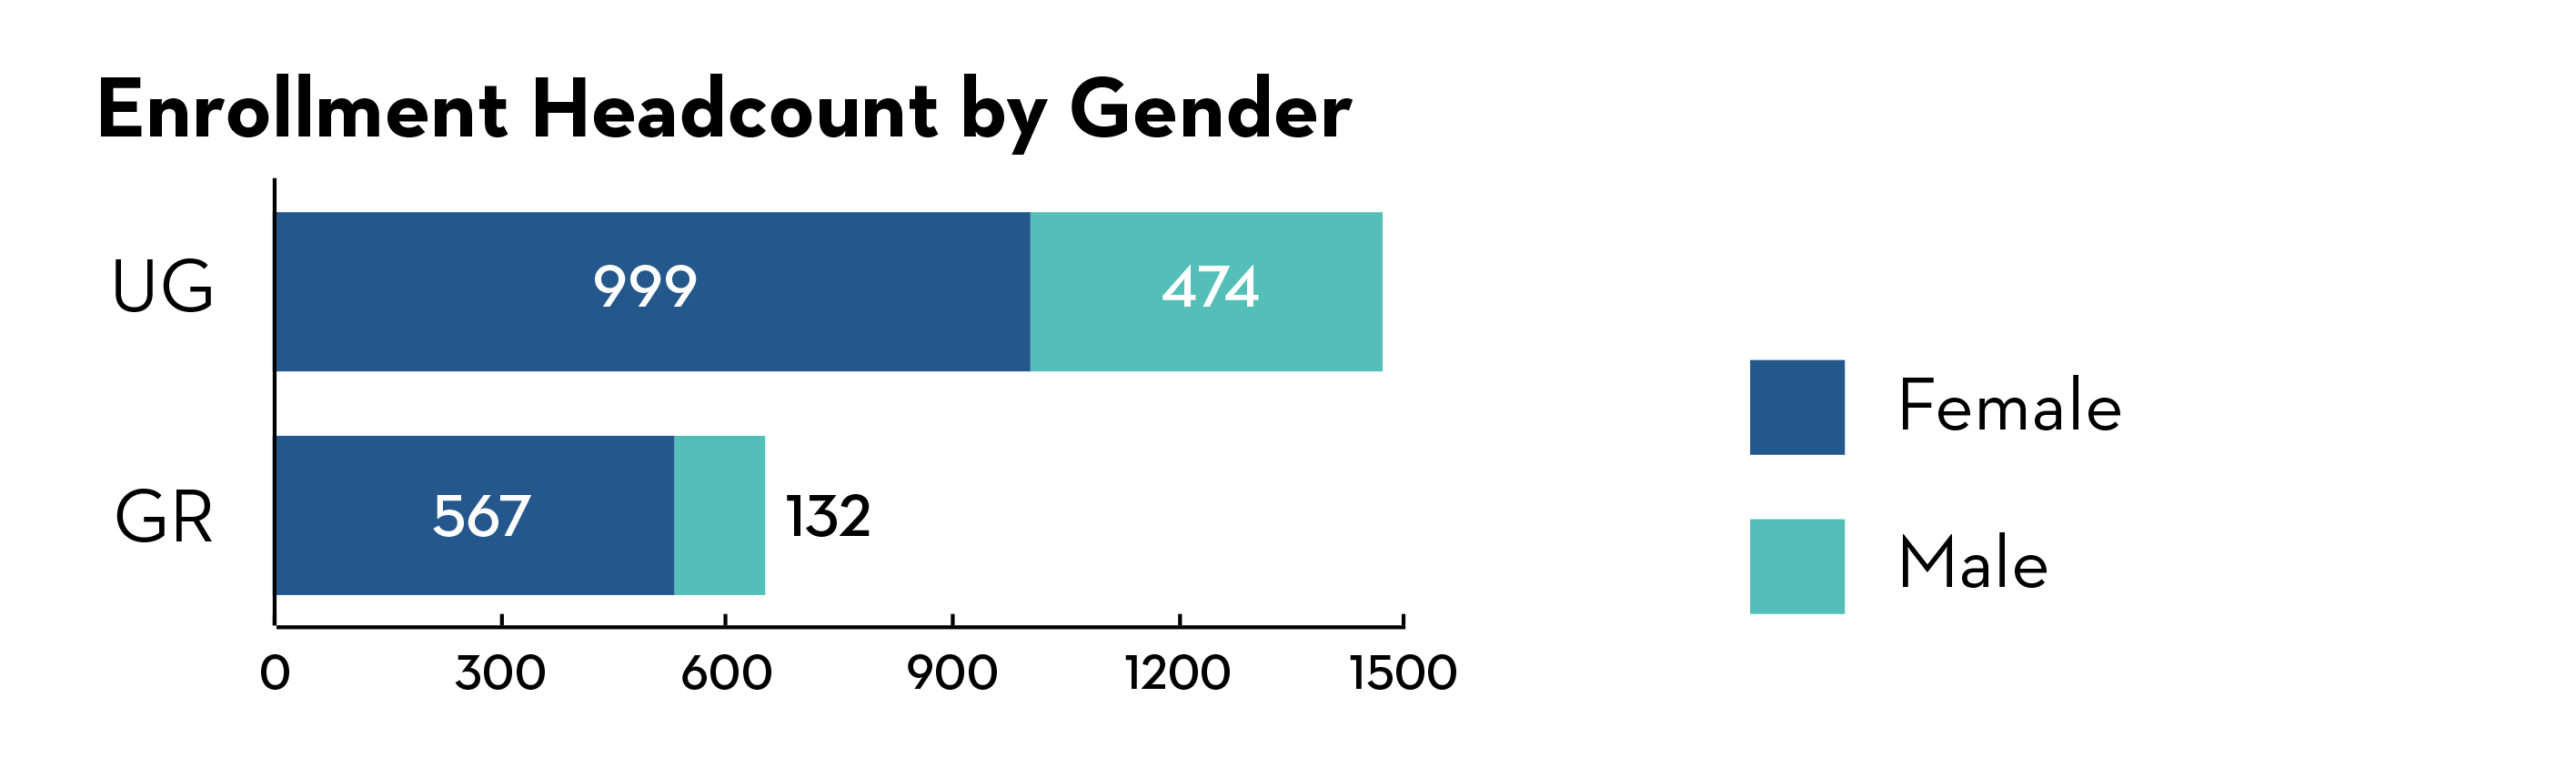 Enrollment Headcount by Gender